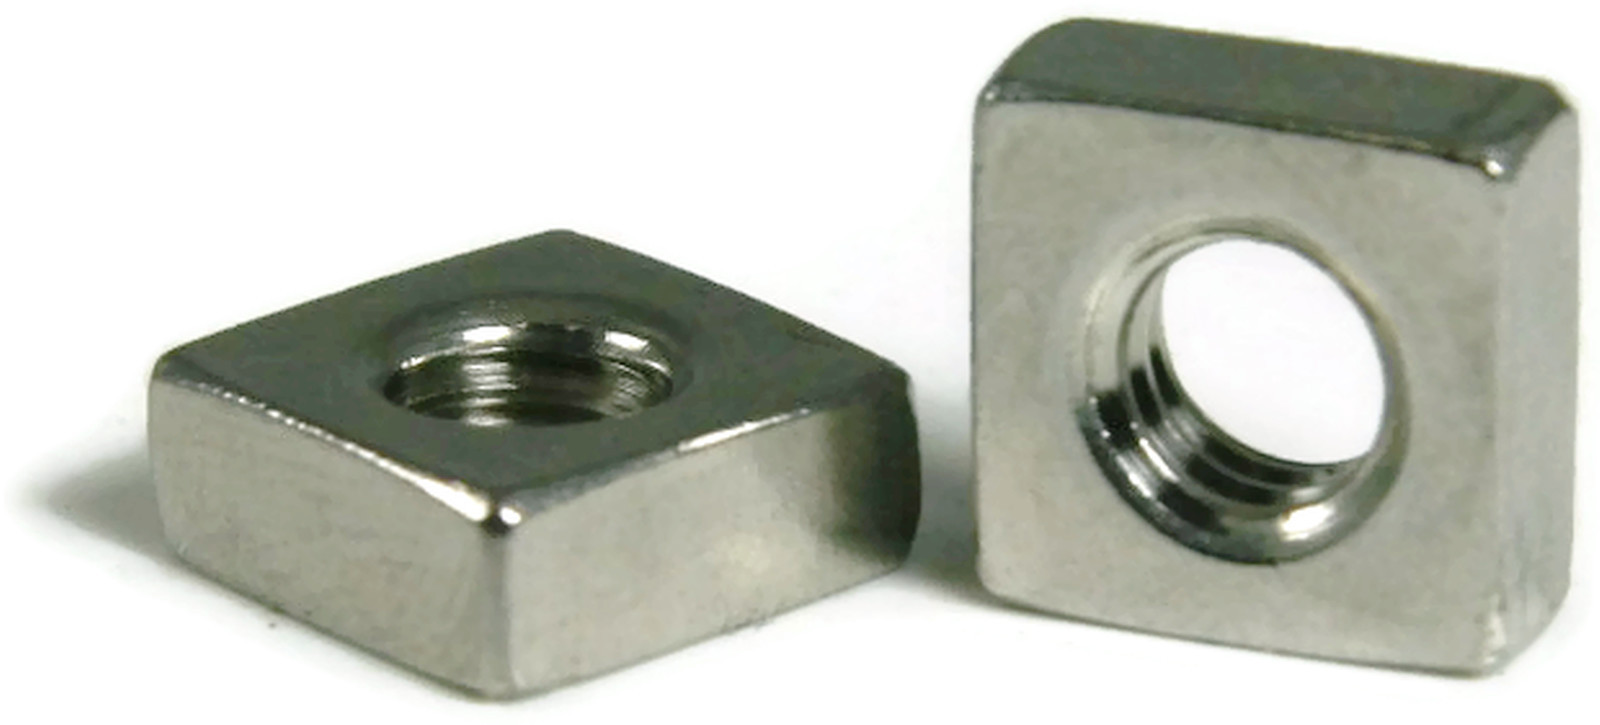 Stainless Steel Square Nuts Unf 10 32 Qty 100 Ebay